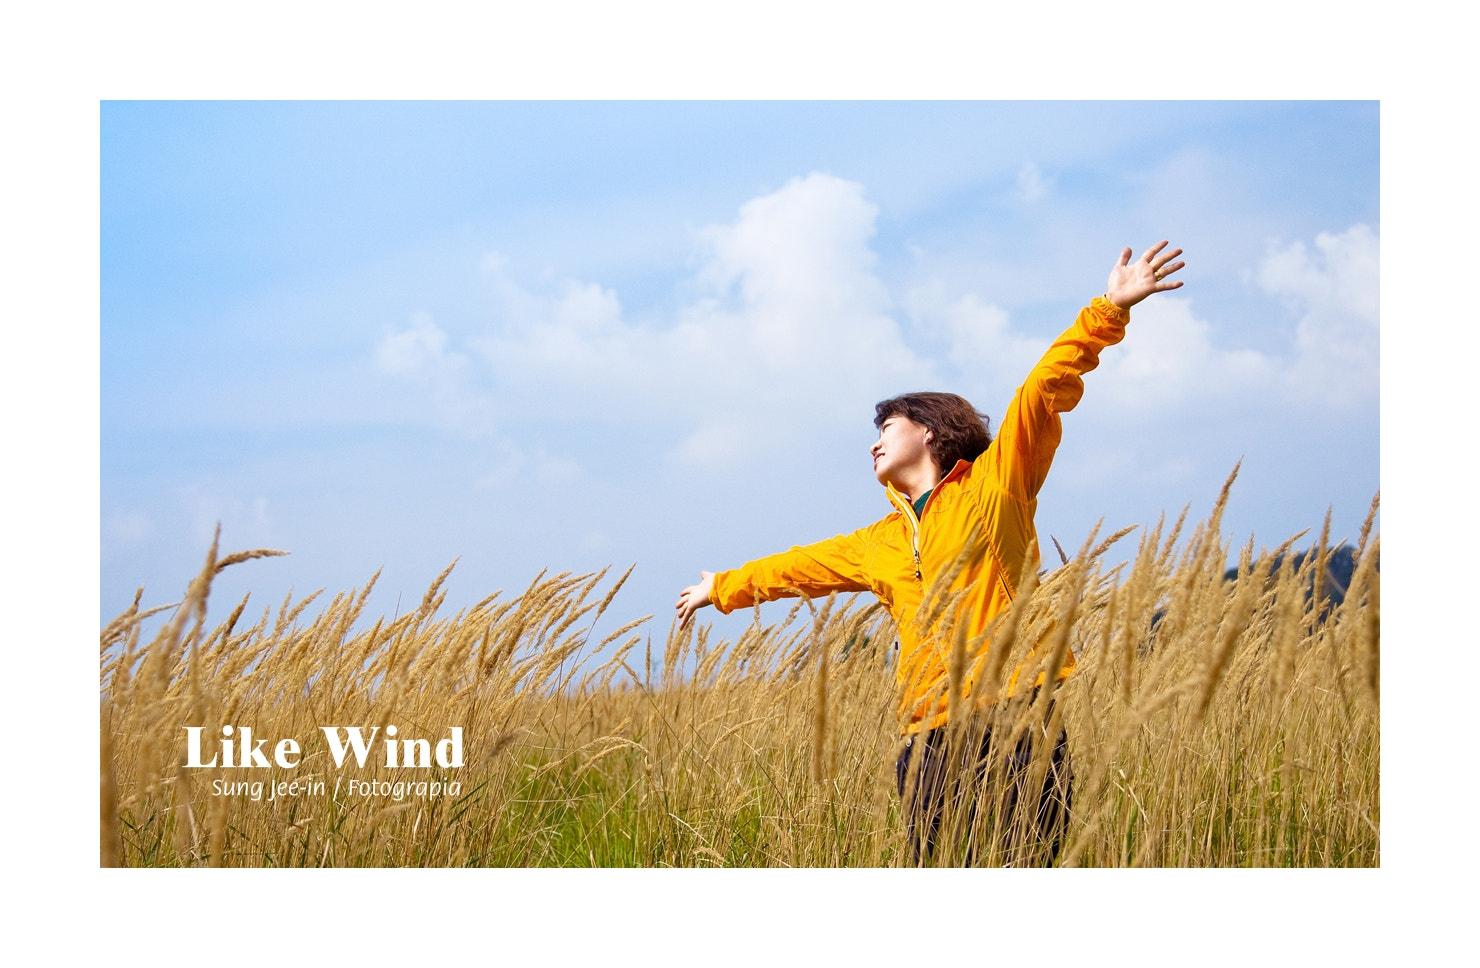 Photograph Like Wind by Sung Jee-in on 500px